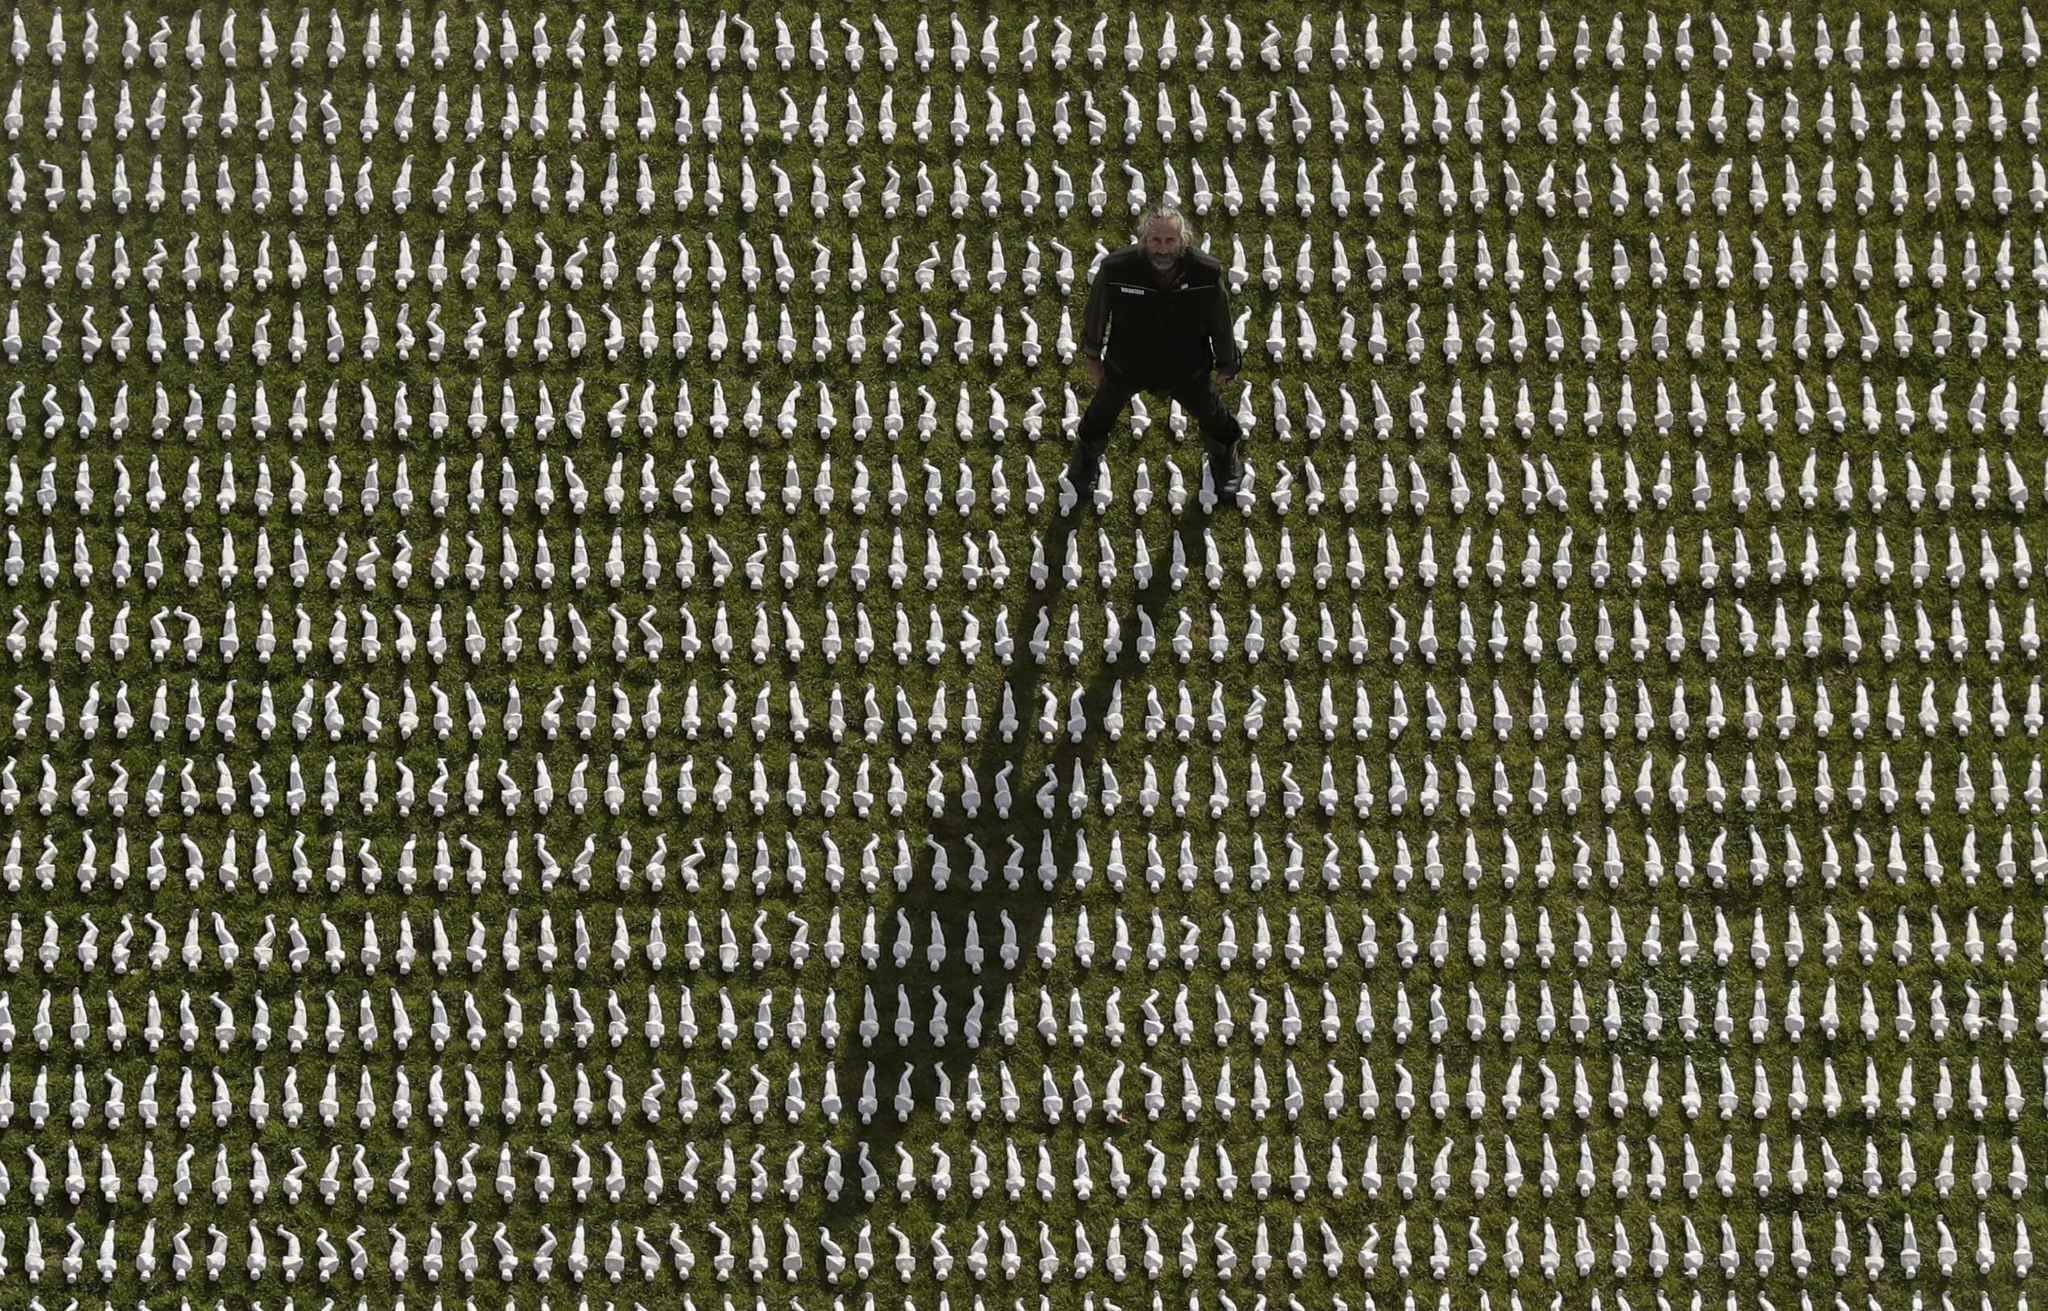 British artist Rob Heard poses for photographs amongst rows of 72,396 shrouded figures which form his piece of commemorative art 'Shrouds of the Somme' to mark the upcoming centenary of the end of World War I, in the Queen Elizabeth Olympic Park, London, Wednesday, Nov. 7, 2018. Each figure is a human form, individually shaped, shrouded and made to a name of the 72,396 missing British and Commonwealth servicemen who were killed fighting in the Somme area of France between July 1, 2016 and March 20, 1918 who have no known grave and whose names are engraved on the Thiepval Memorial in France. World War I ended on November 11, 1918.